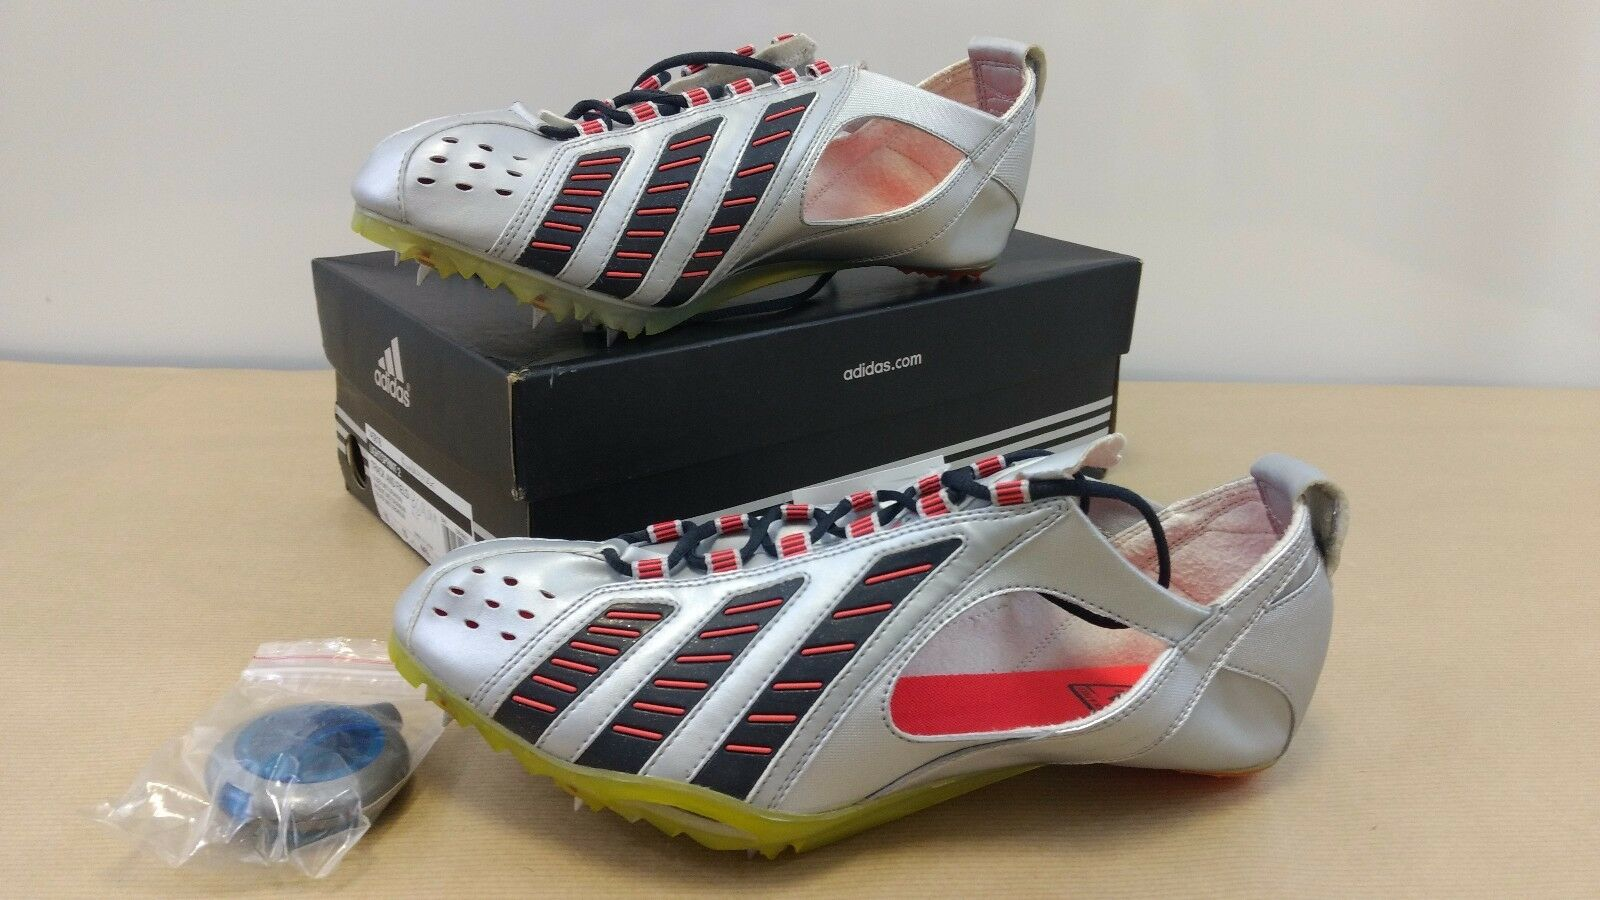 Adidas Lightsprint2 Track and Field Boots Silver, Red, Black, UK size 10